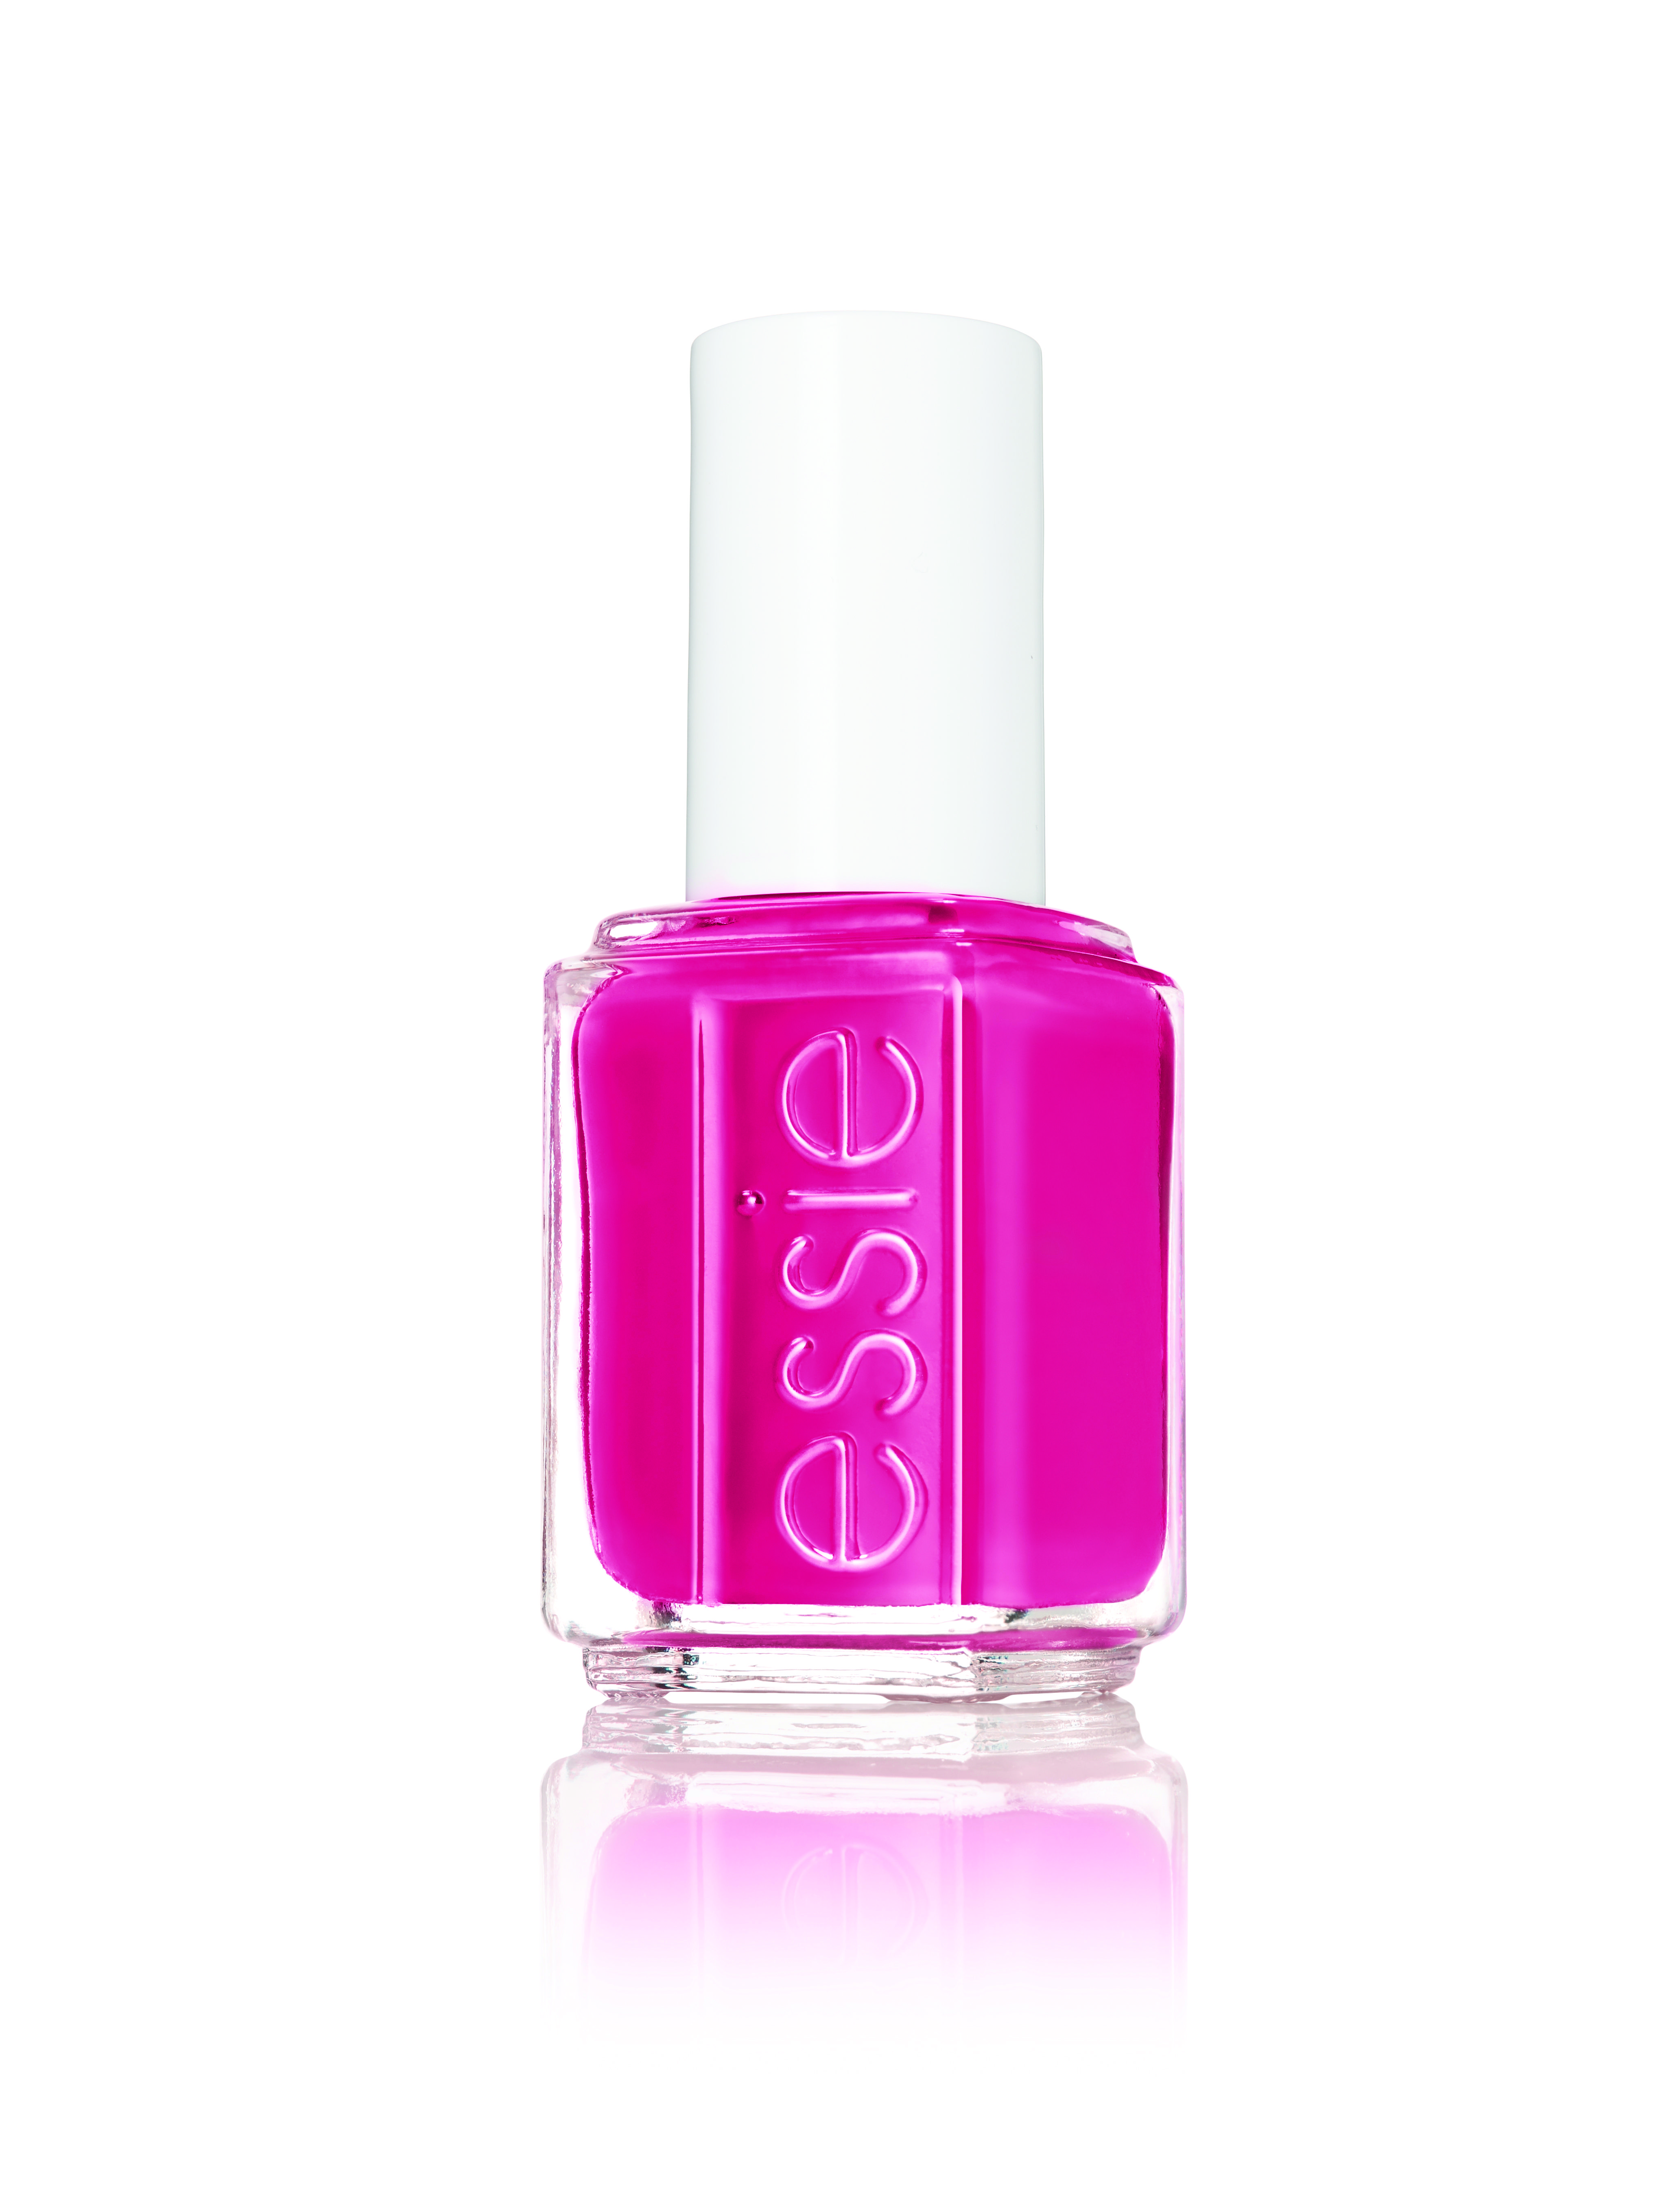 Stay 'haute in the heat' with this chic raspberry pink #summer14 #essielook